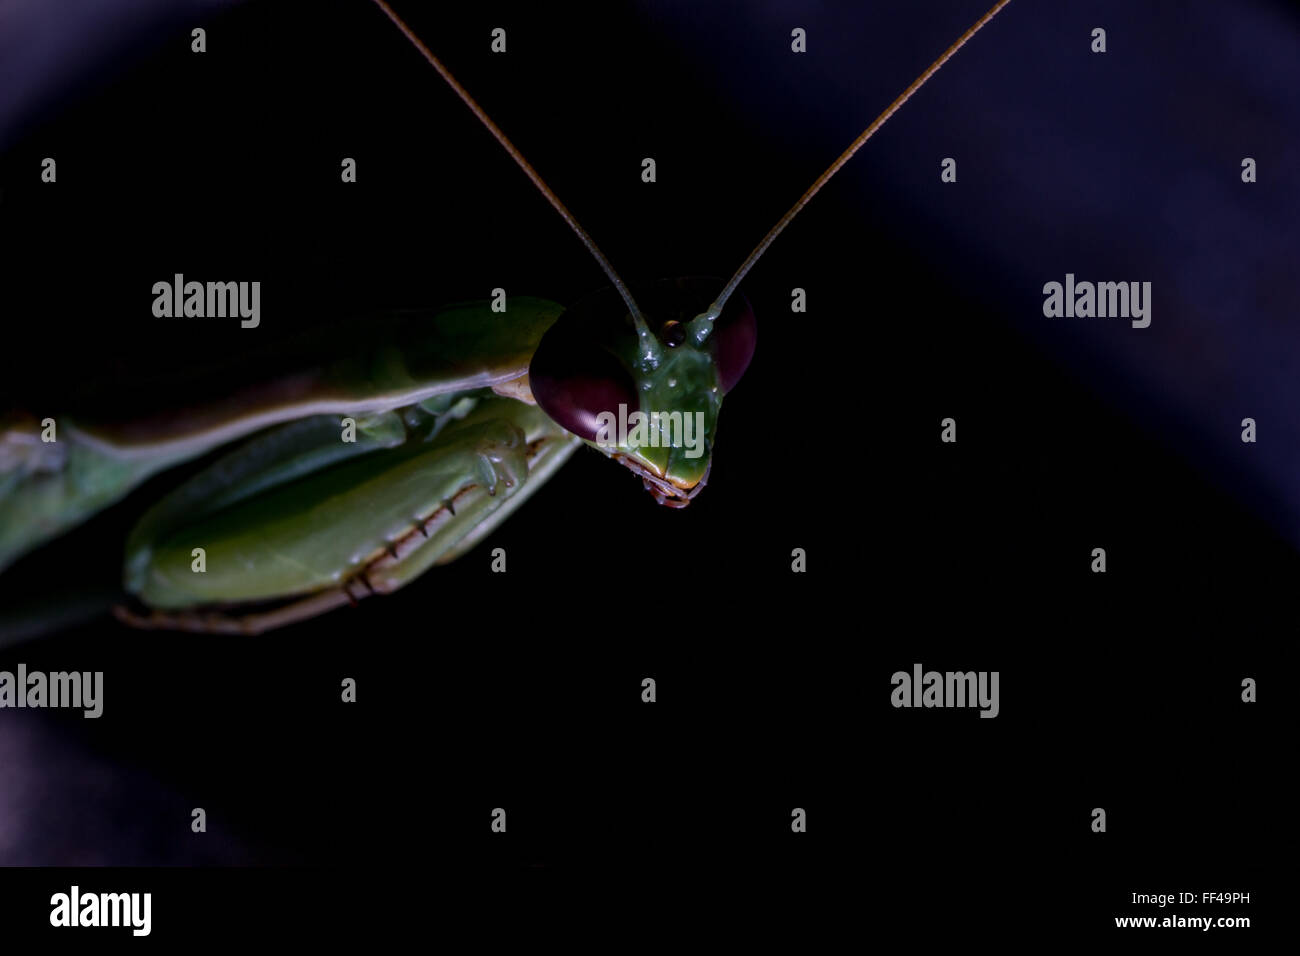 Der Alien Mantis Stockbild